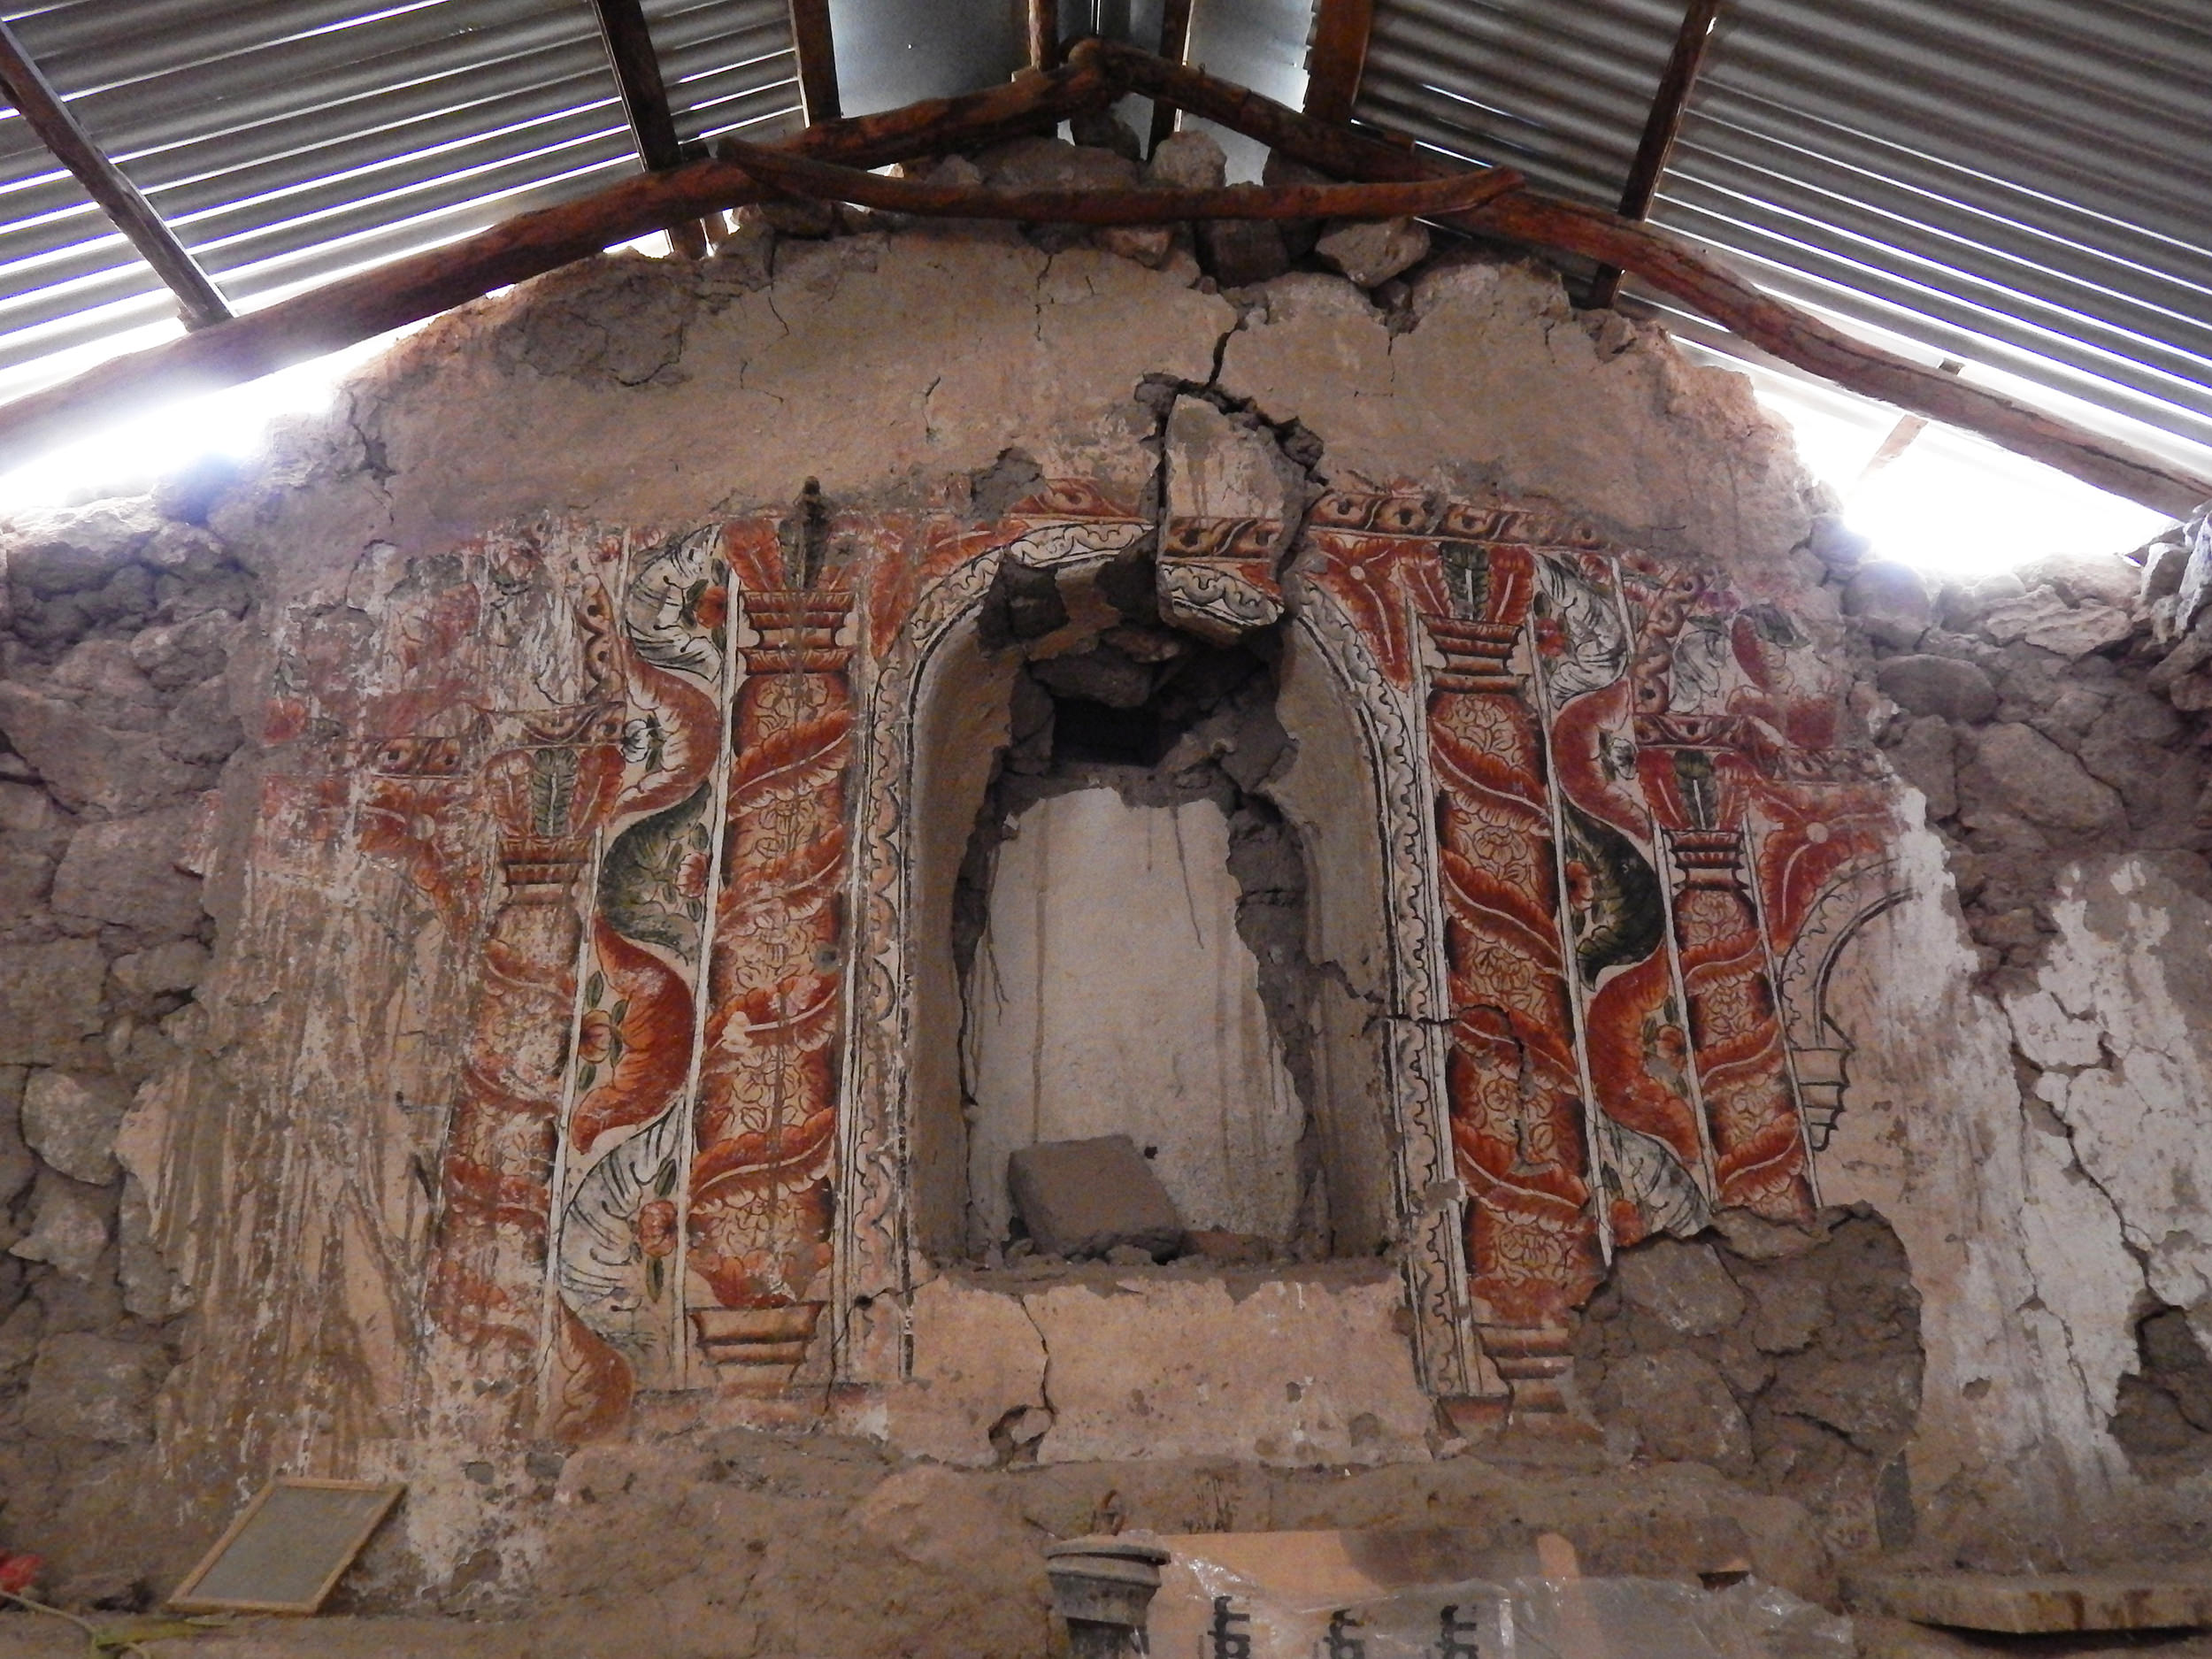 Fig. 37 Painted retablo, 18th century, Church of Sotoca, Arica and Parinacota Region (Chile). Photo by author. Note the similar decorations and color scheme with the example from Pitumarca.